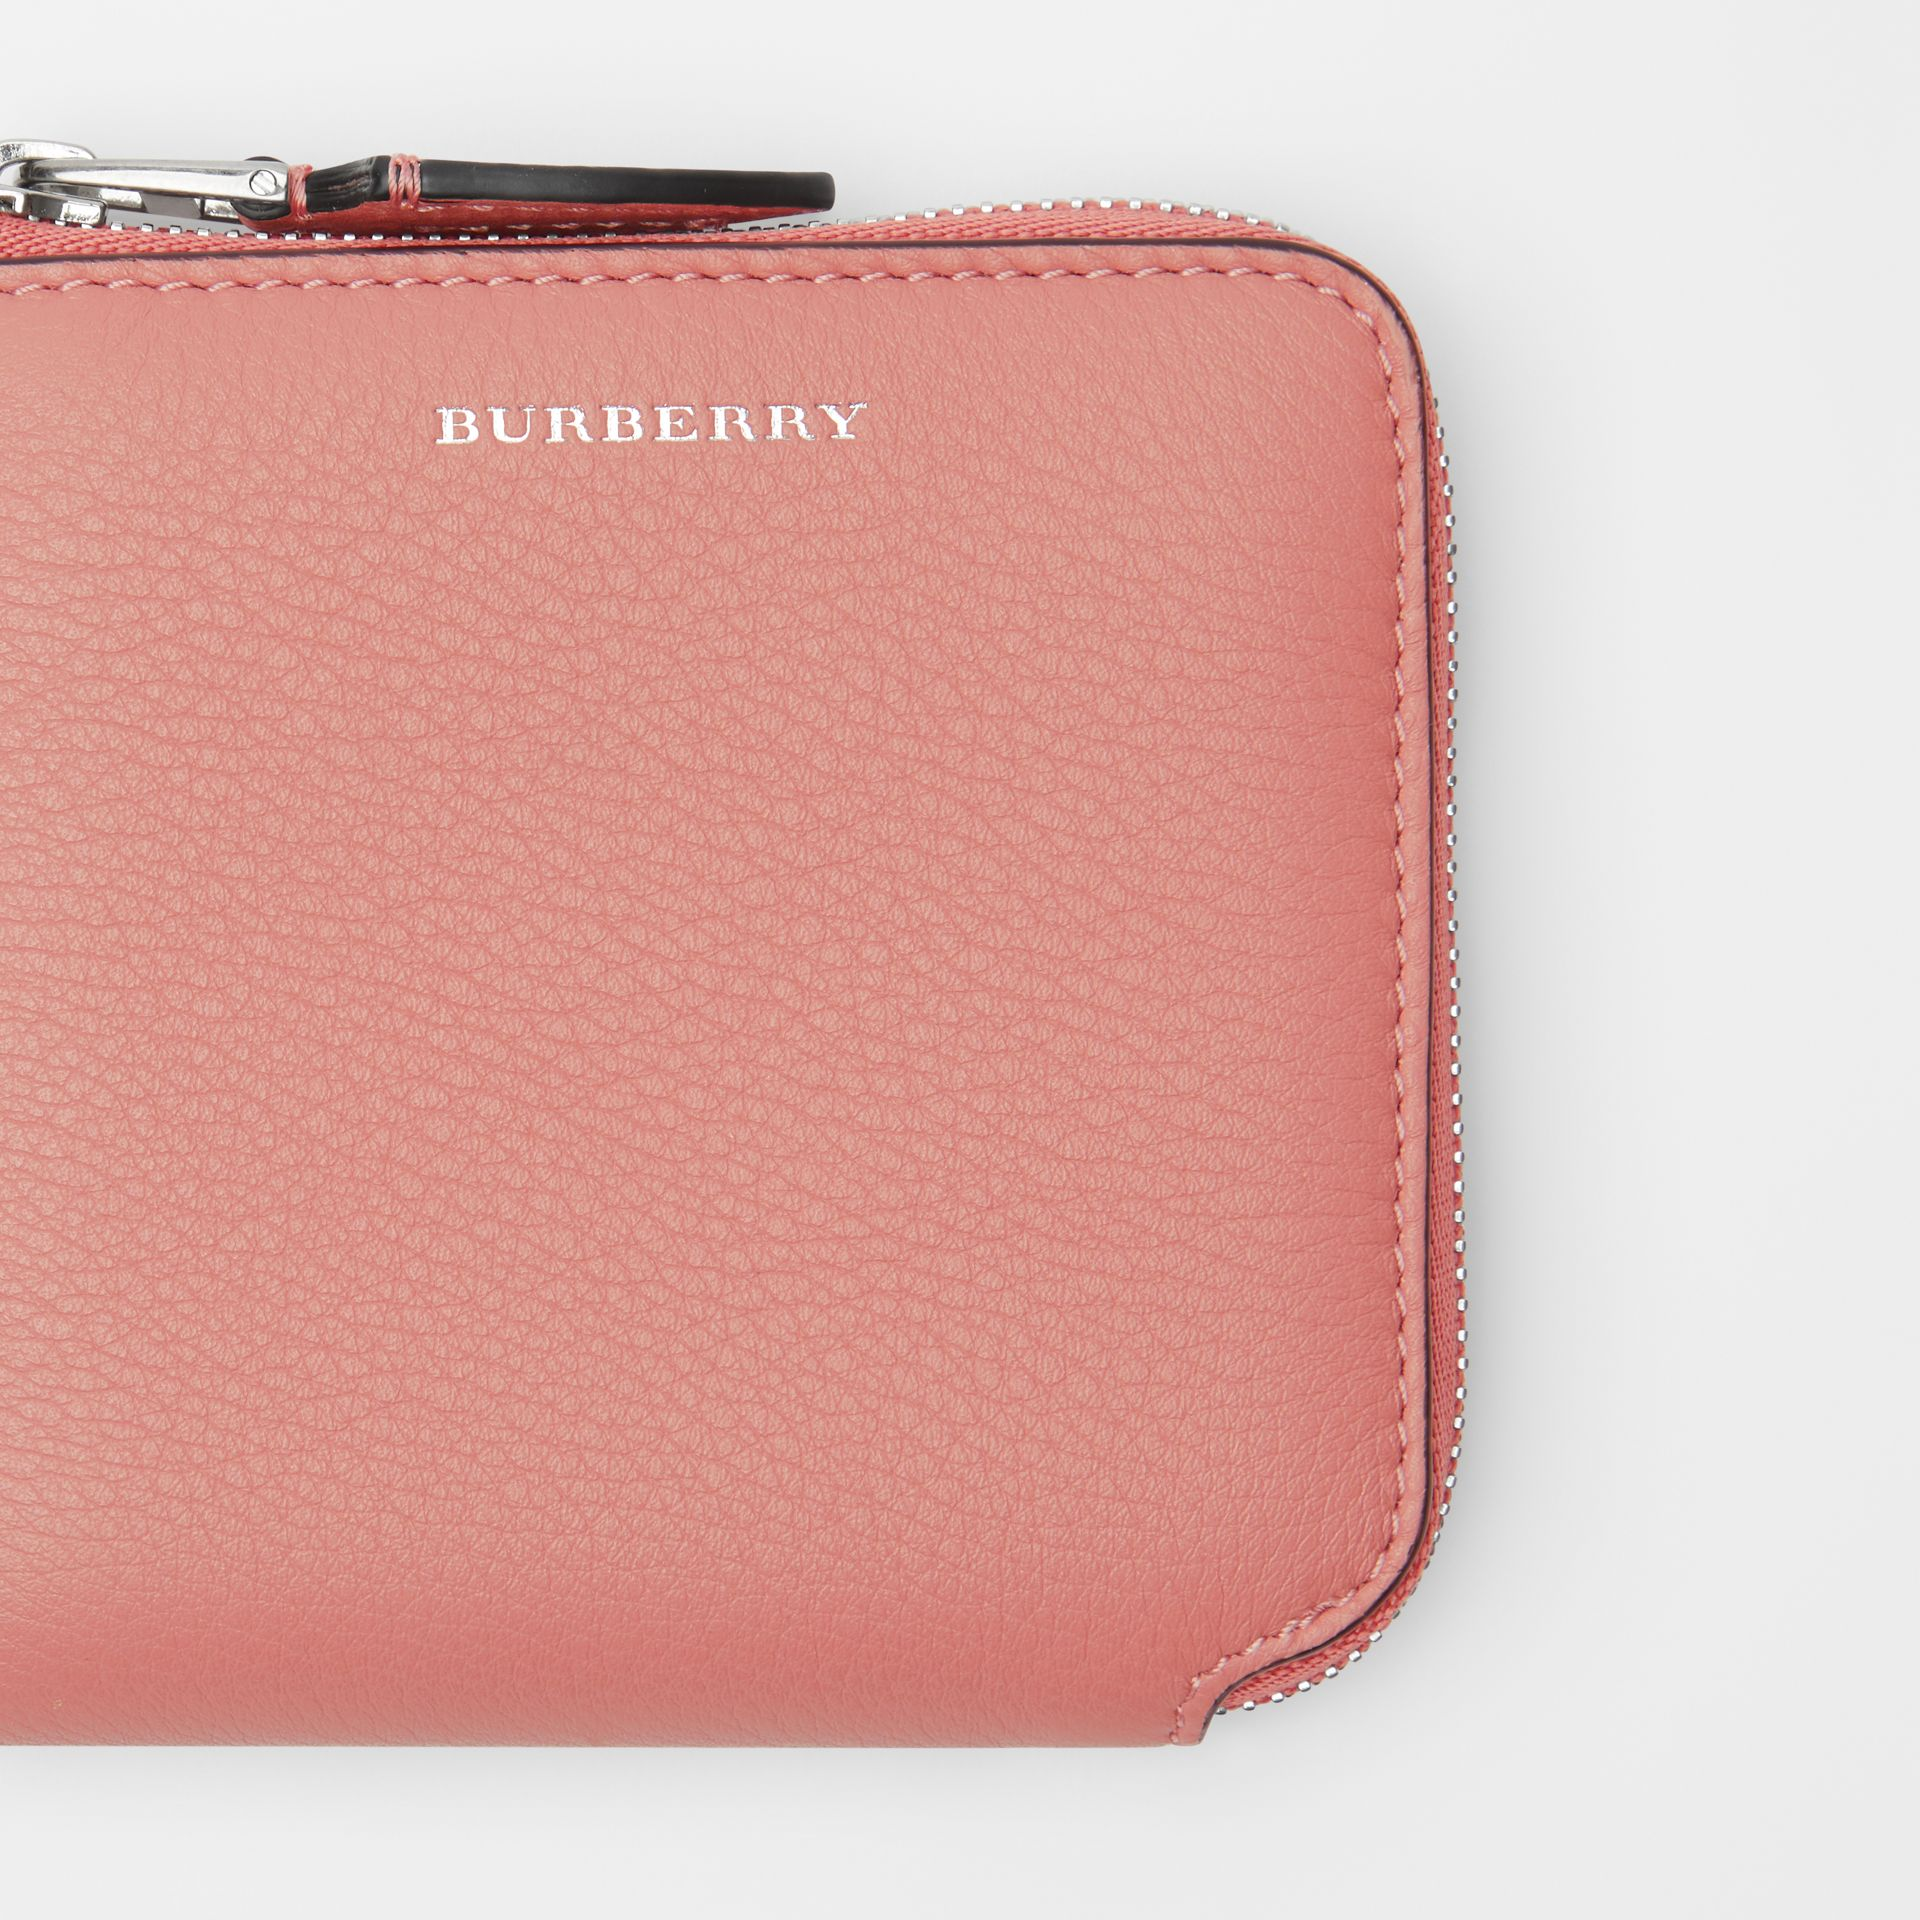 Grainy Leather Square Ziparound Wallet in Dusty Rose - Women | Burberry - gallery image 1